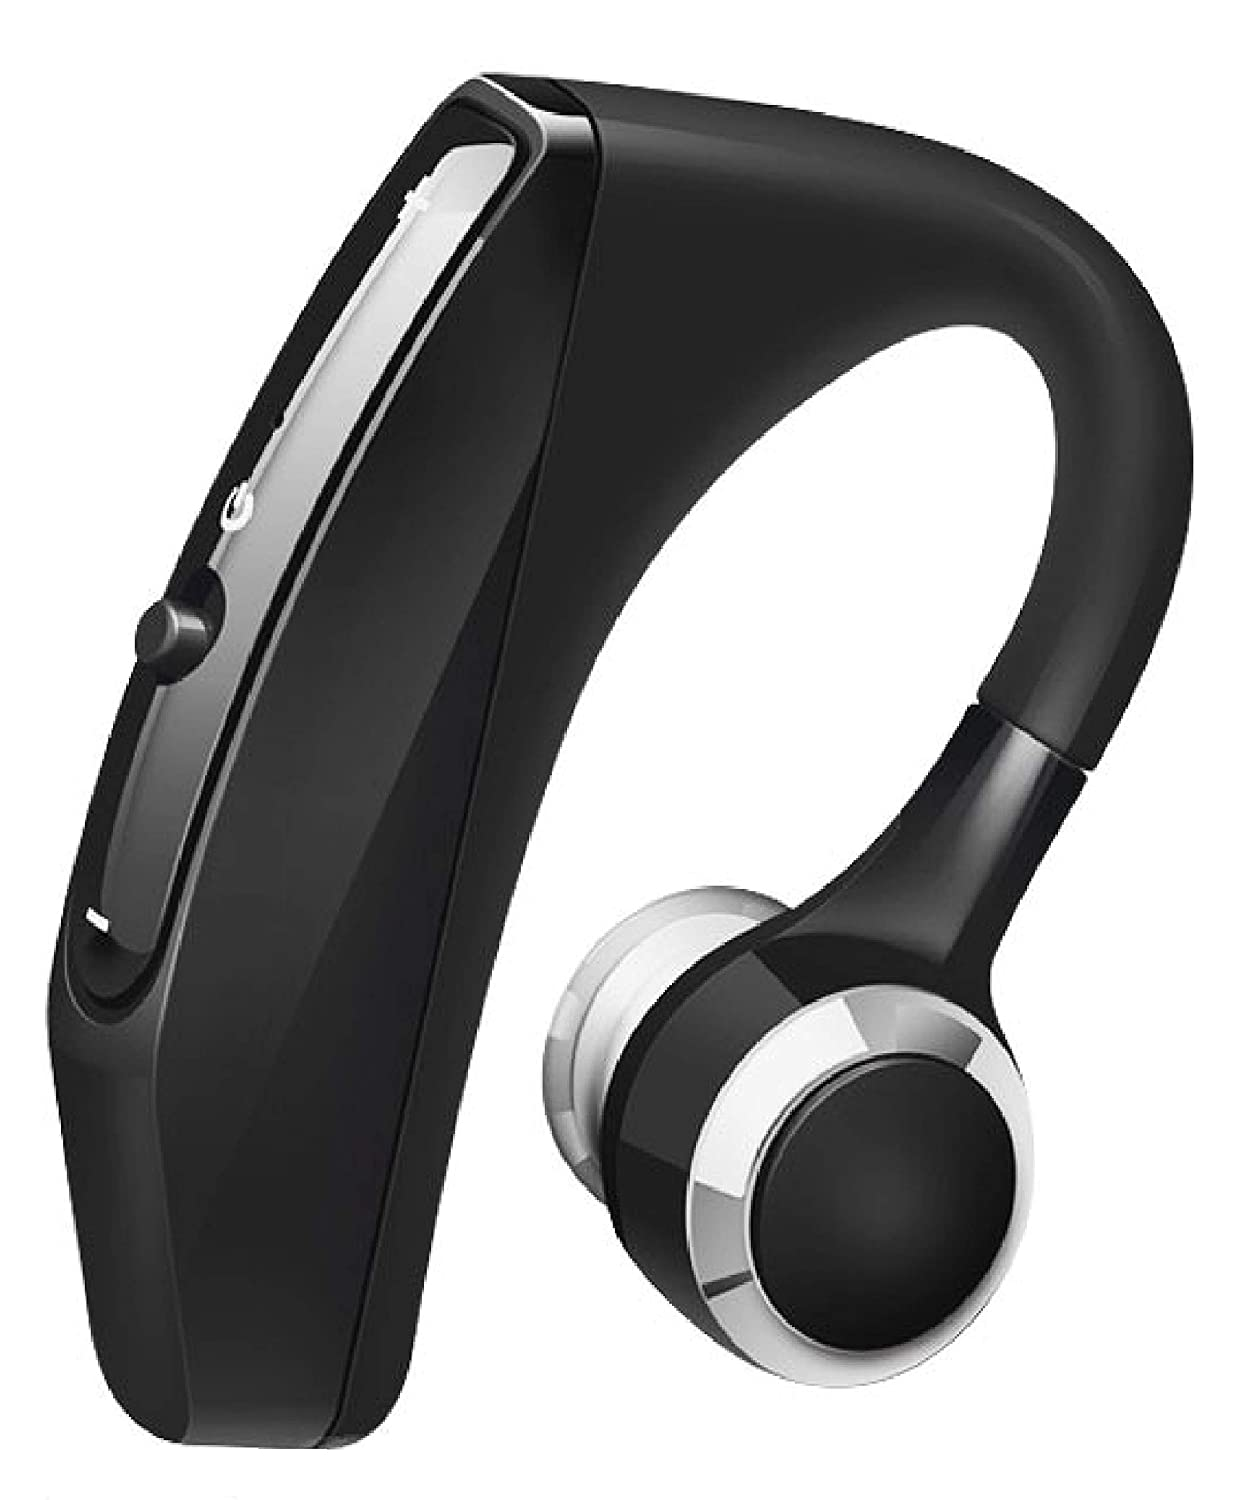 Pelotek; Over The Ear Bluetooth Headphones | Wireless Bluetooth Headset for Cell Phones| Hand Free Bluetooth Headset for Cellphone | with Mic Voice Control Noise Cancelling Design (Black